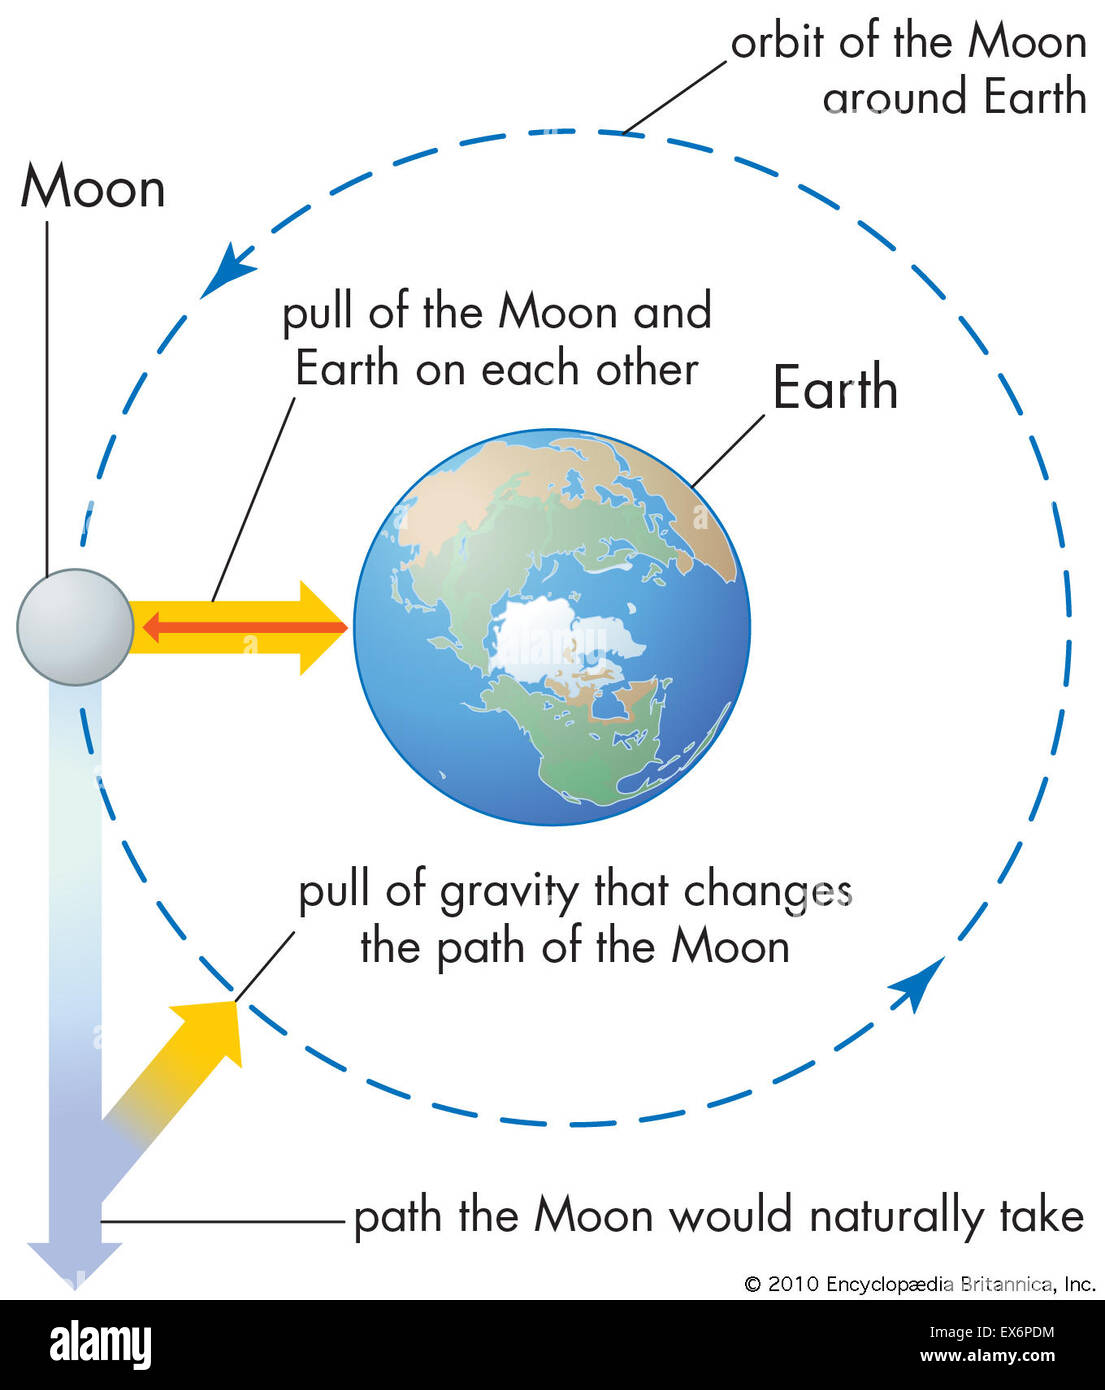 Effects of gravity on the Moon and Earth - Stock Image